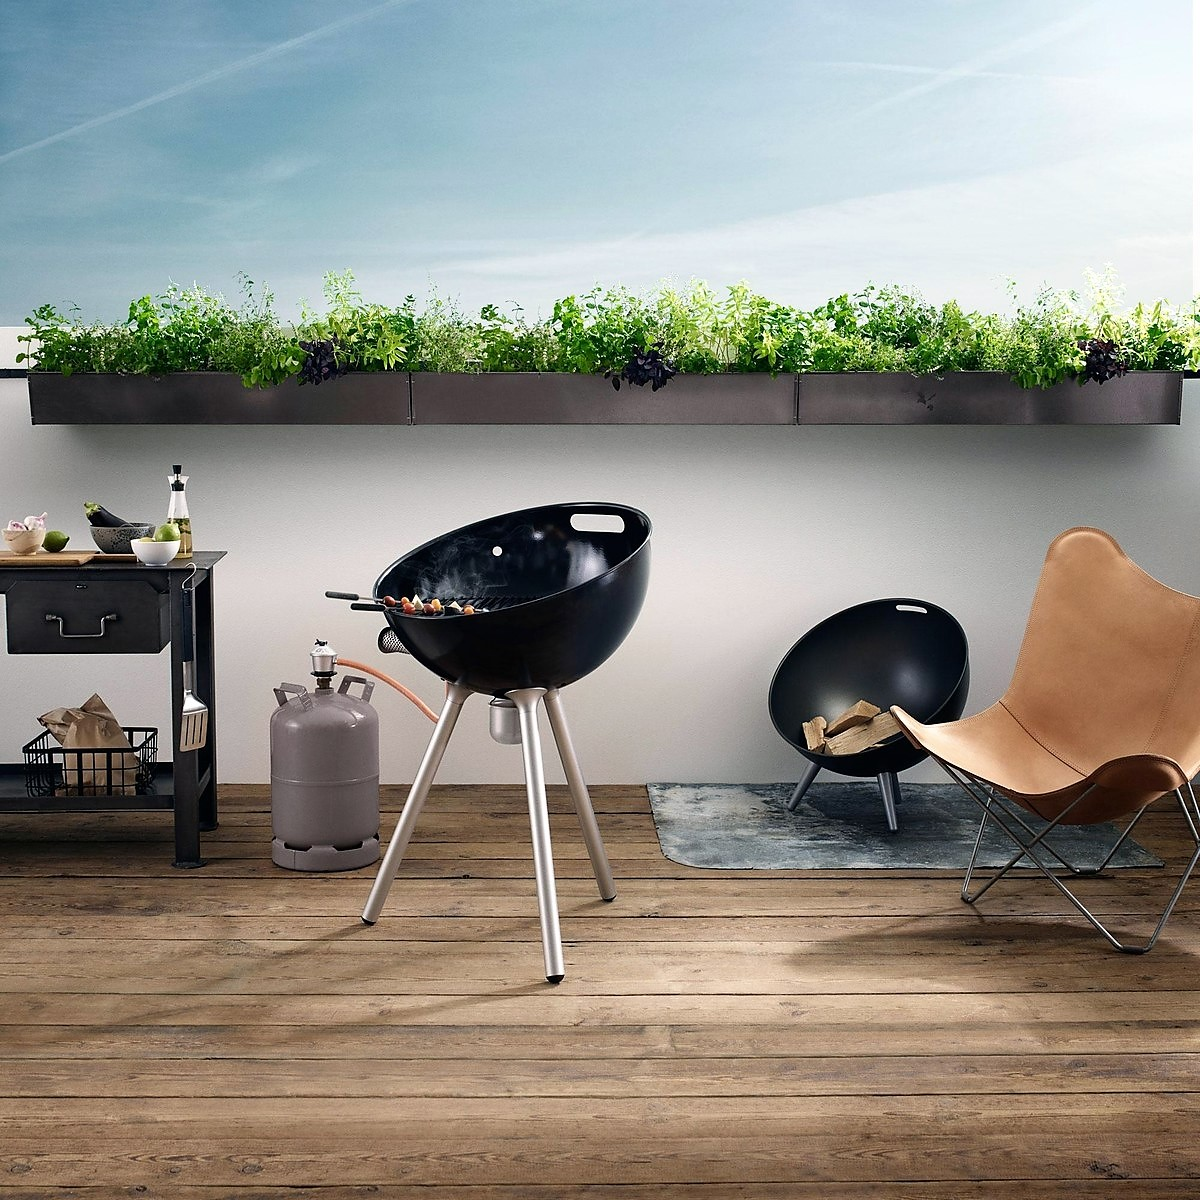 eva solo barbecues barbecue fireglobe gas grill. Black Bedroom Furniture Sets. Home Design Ideas